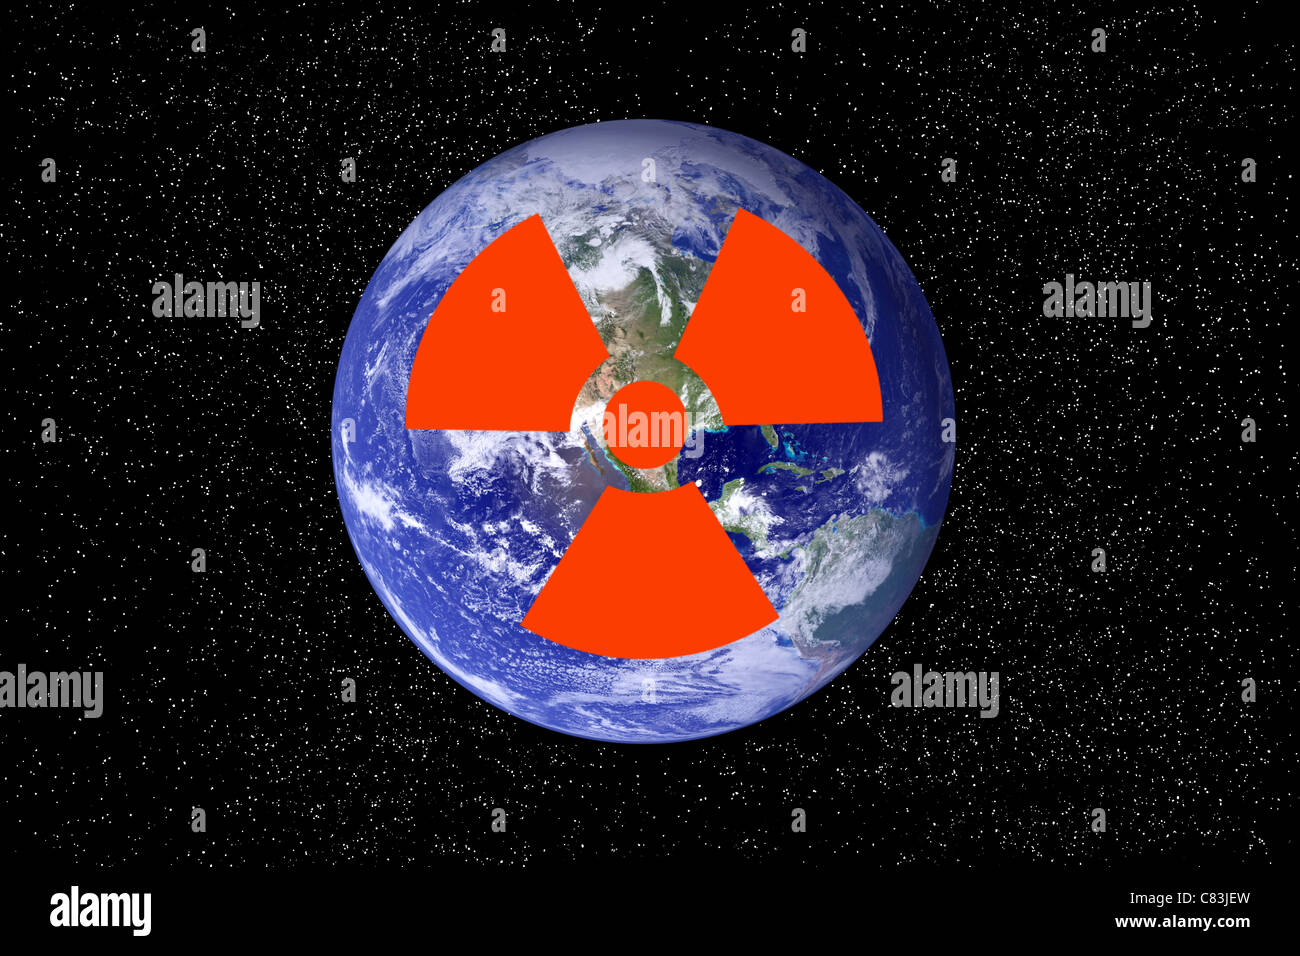 Radioactive sign over image of the Earth. - Stock Image